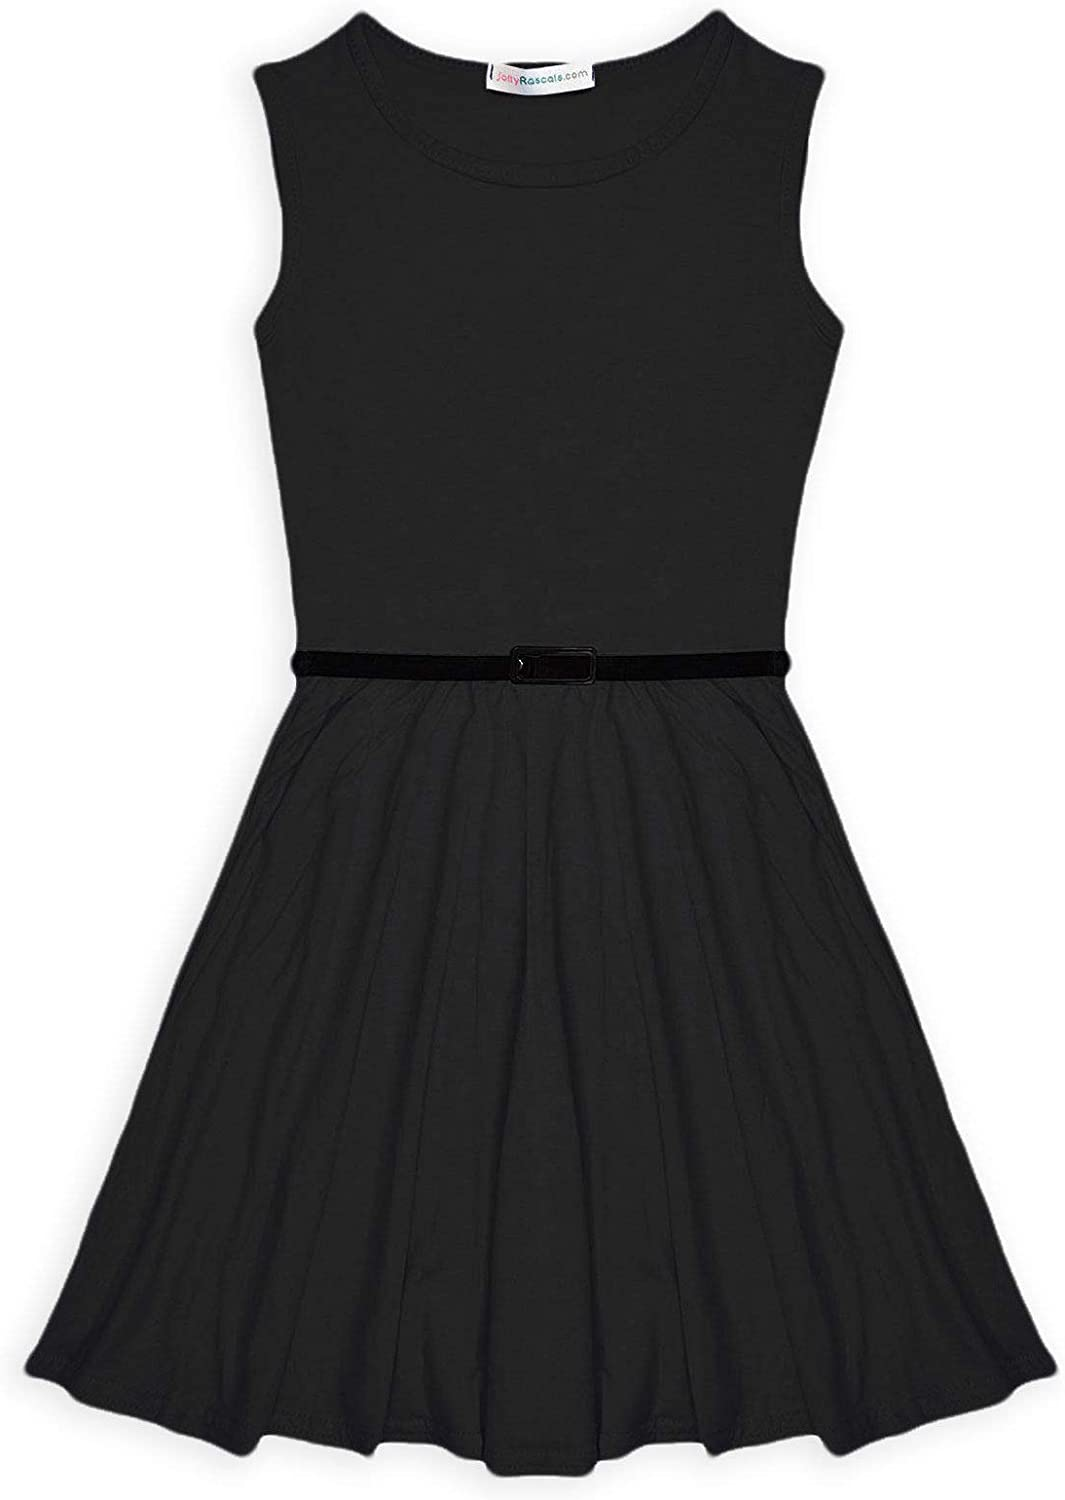 jolly rascals Girls Skater Dress Kids New Party Summer Dance Dresses Ages 5 6 7 8 9 10 11 12 13 Years